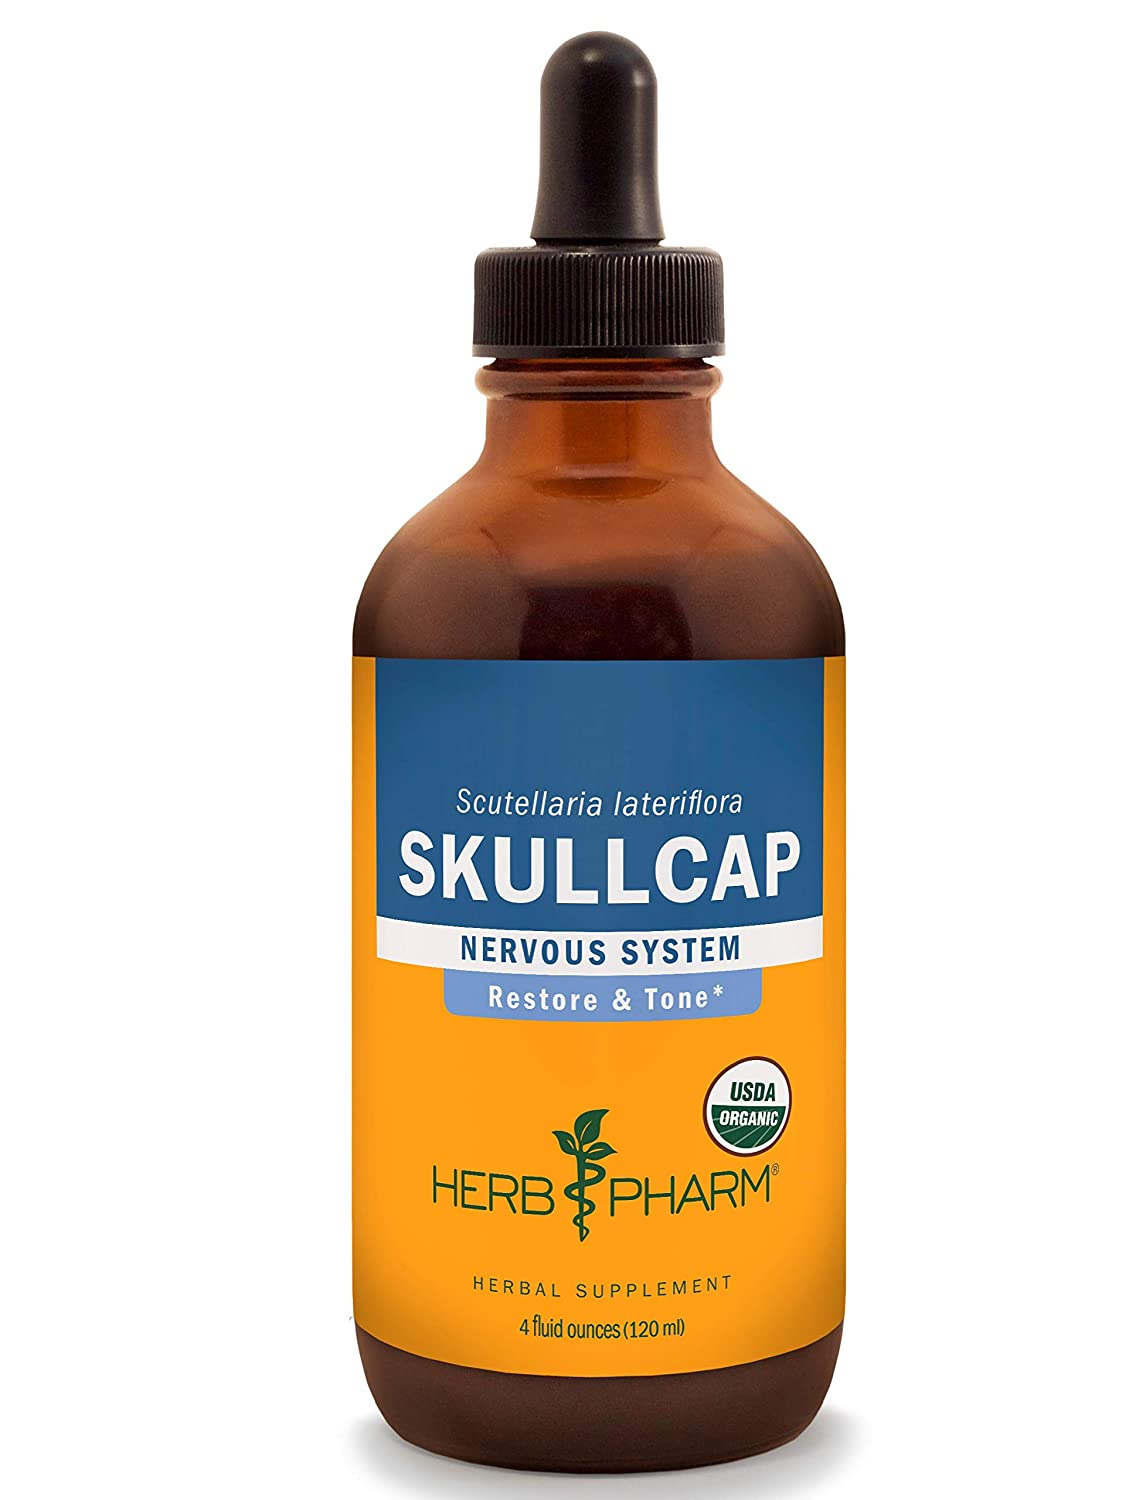 Herb Pharm Certified Organic Skullcap Liquid Extract for Nervous System Support, Organic Cane Alcohol, 4 Ounce